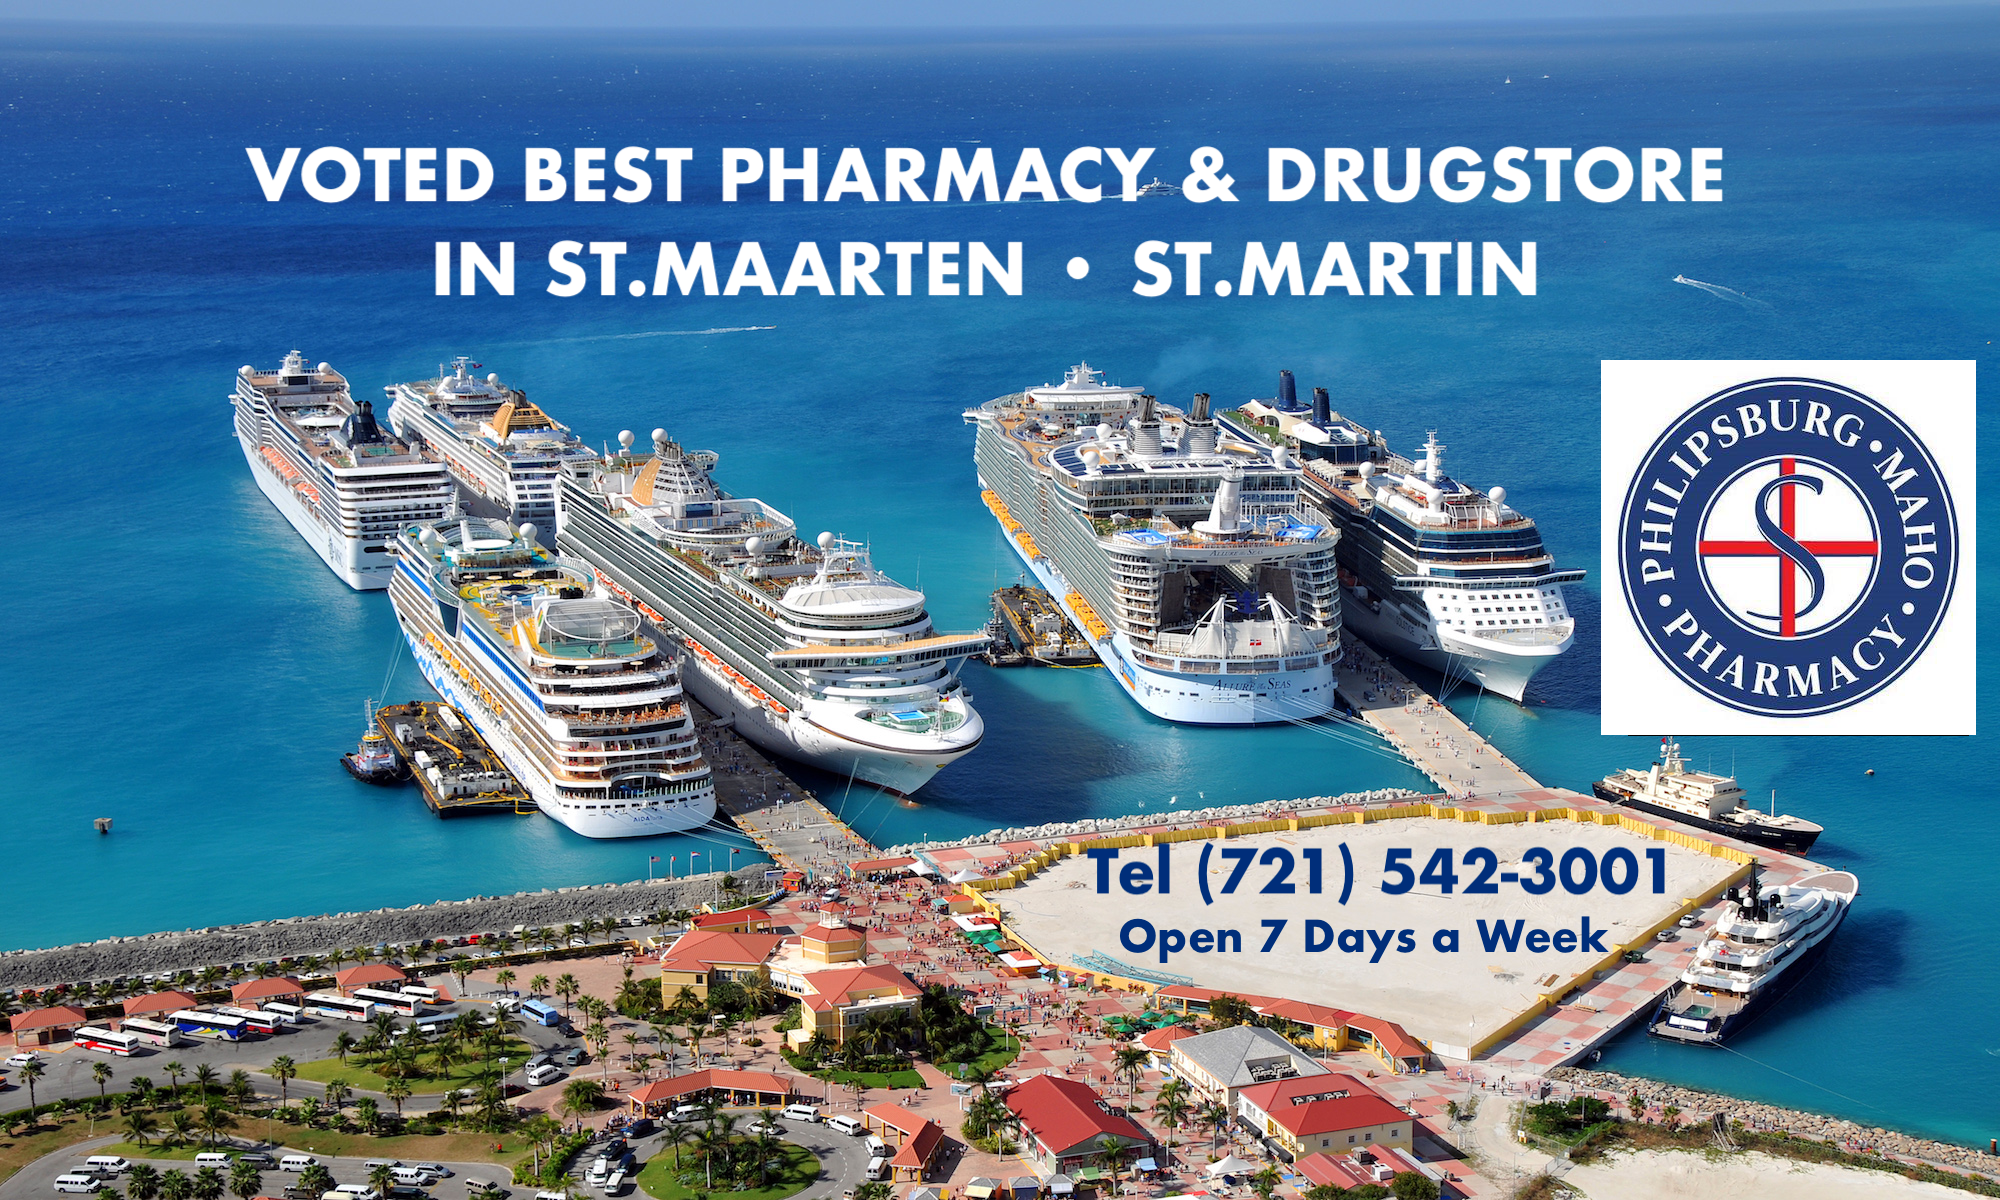 Voted best Pharmacy & Drugstore in St.Maarten-St.Martin